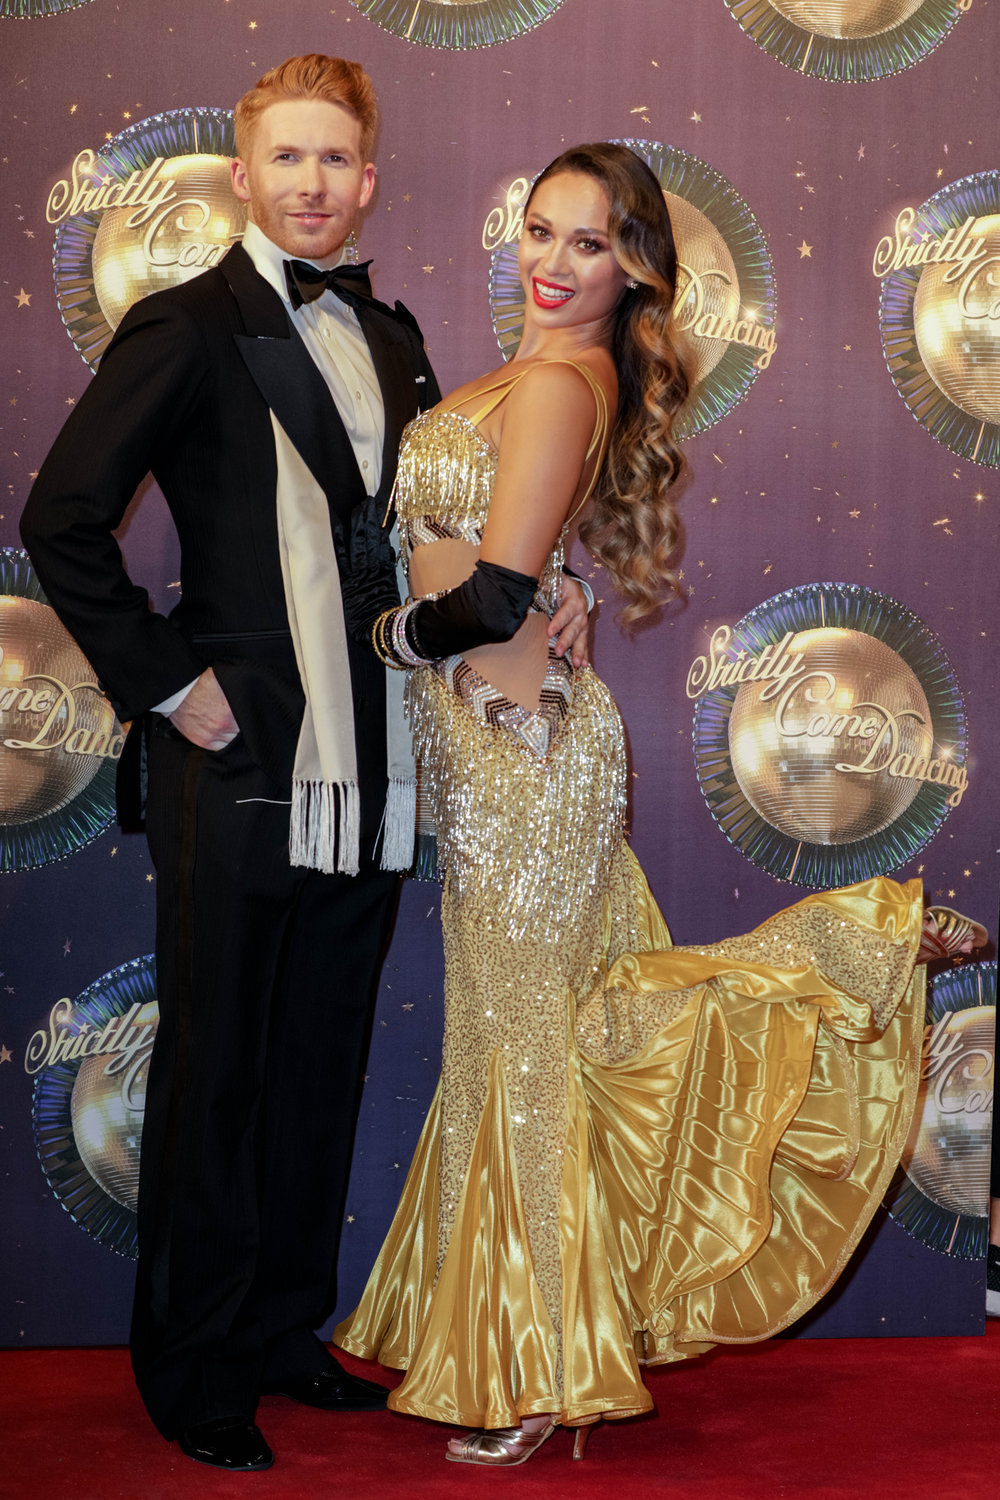 PHT_B5327_strictly_come_dancing_14139.JPG